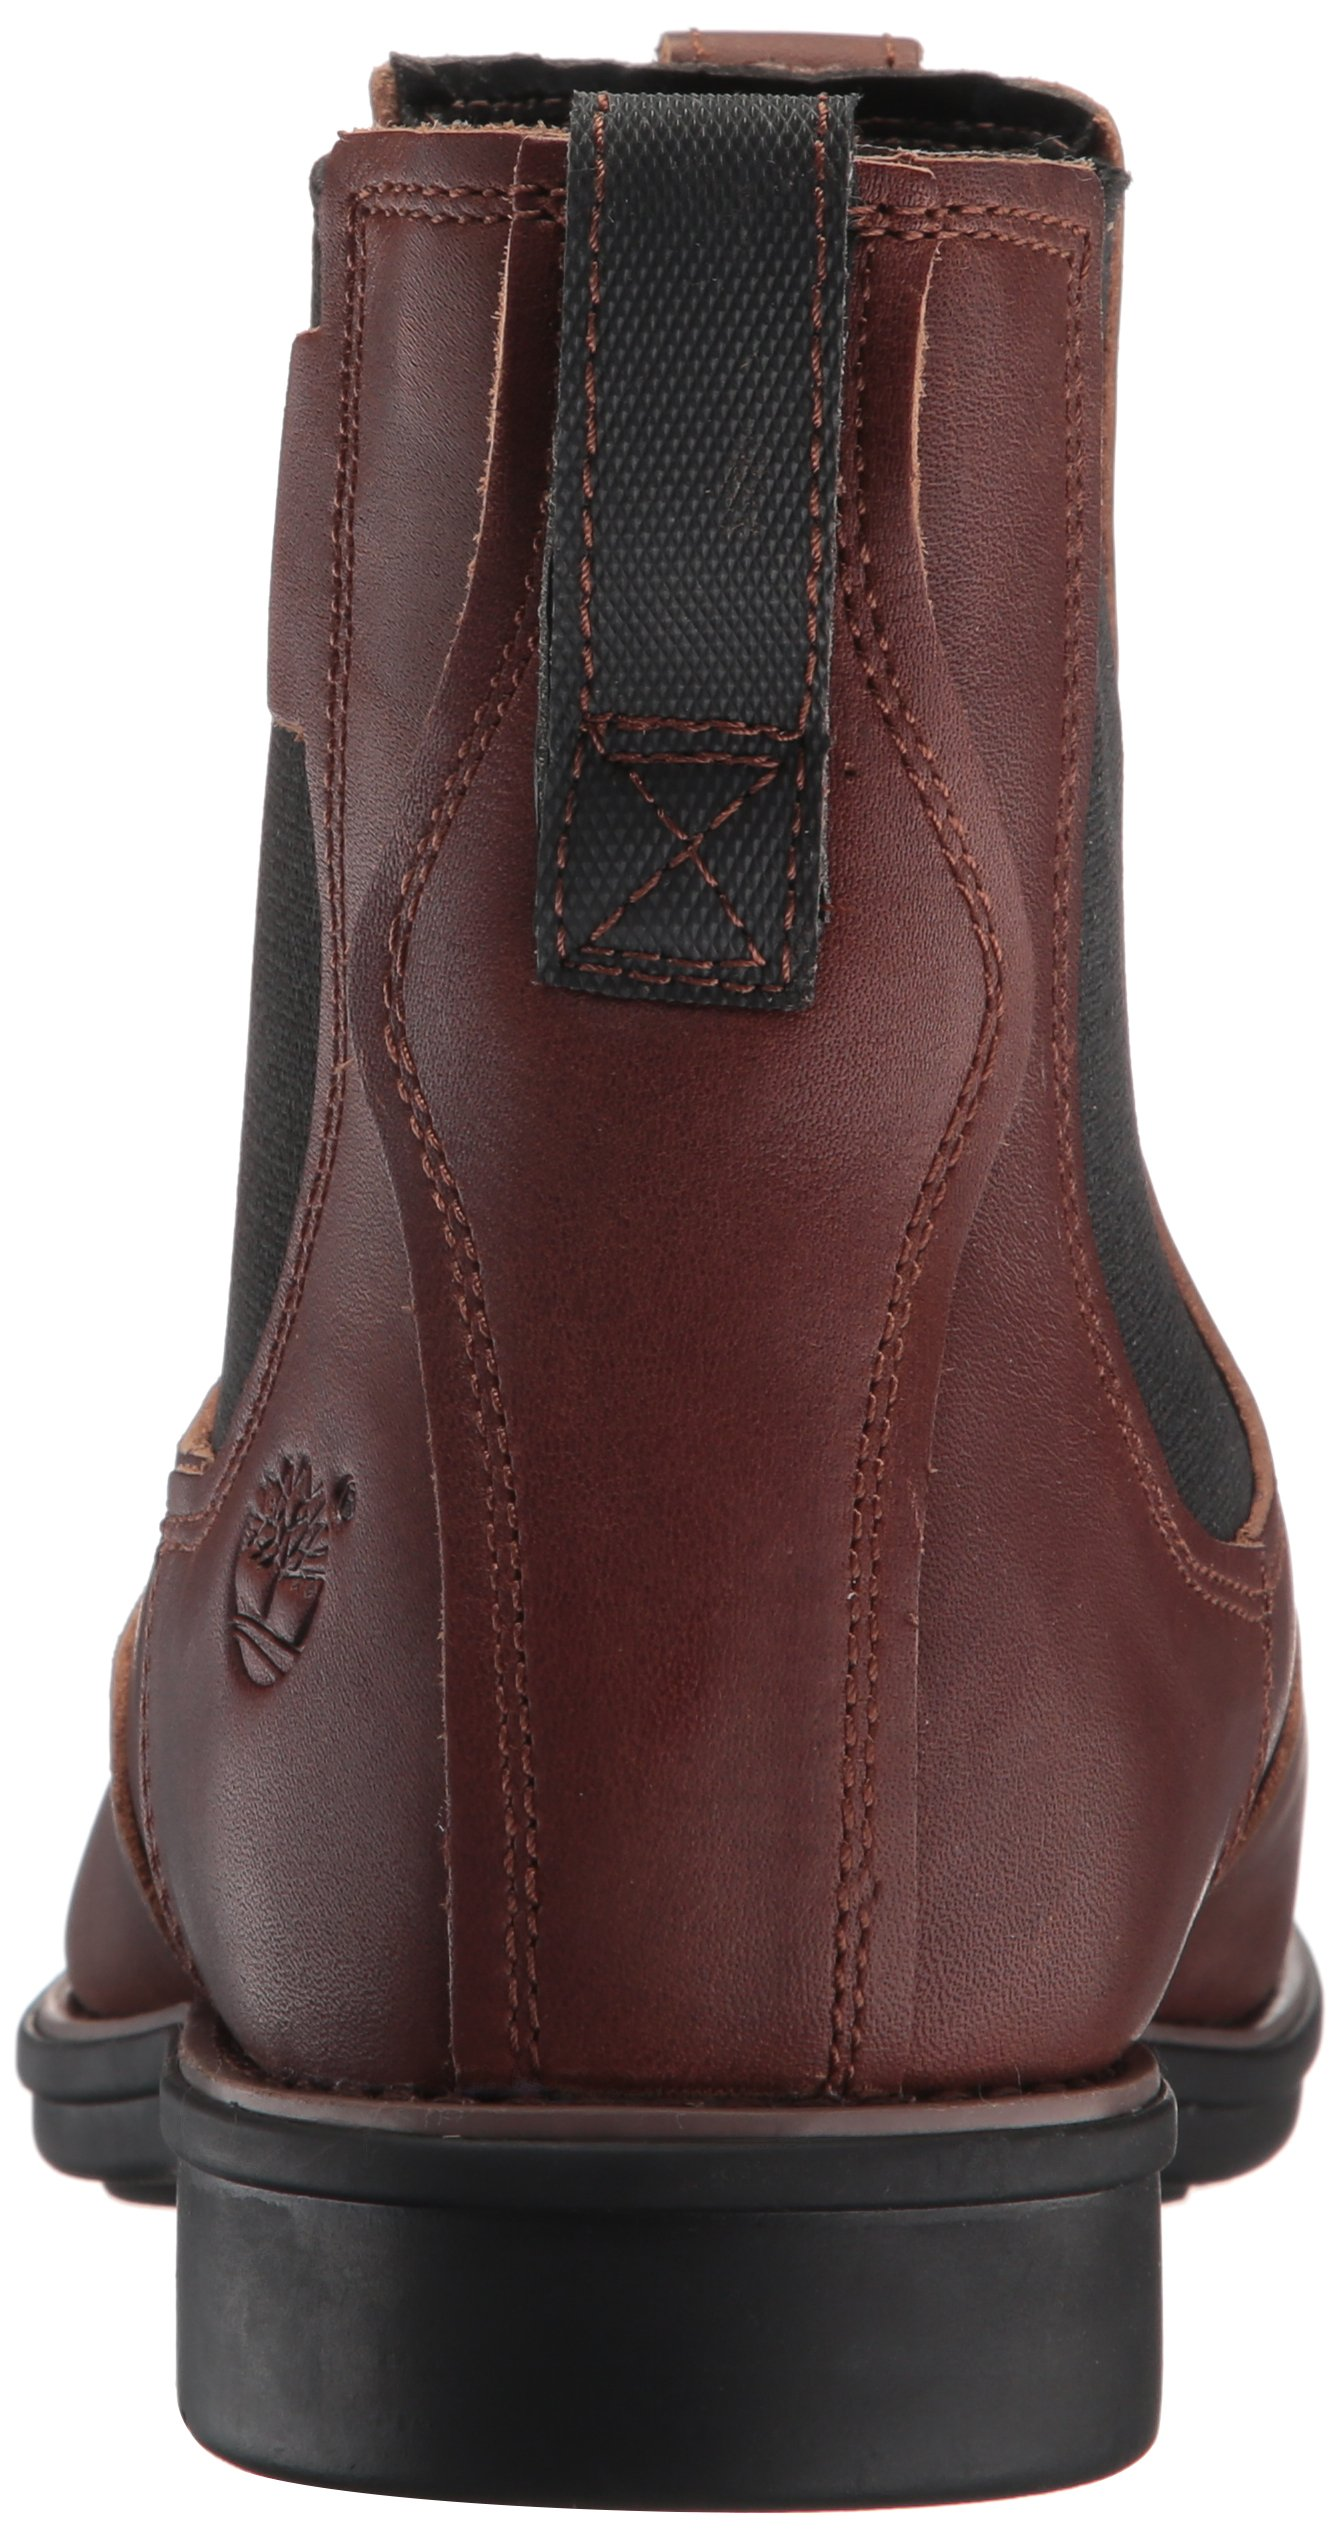 Timberland Men's Carter Notch Chelsea Boot, Dark Brown Full Grain, 14 C US by Timberland (Image #2)